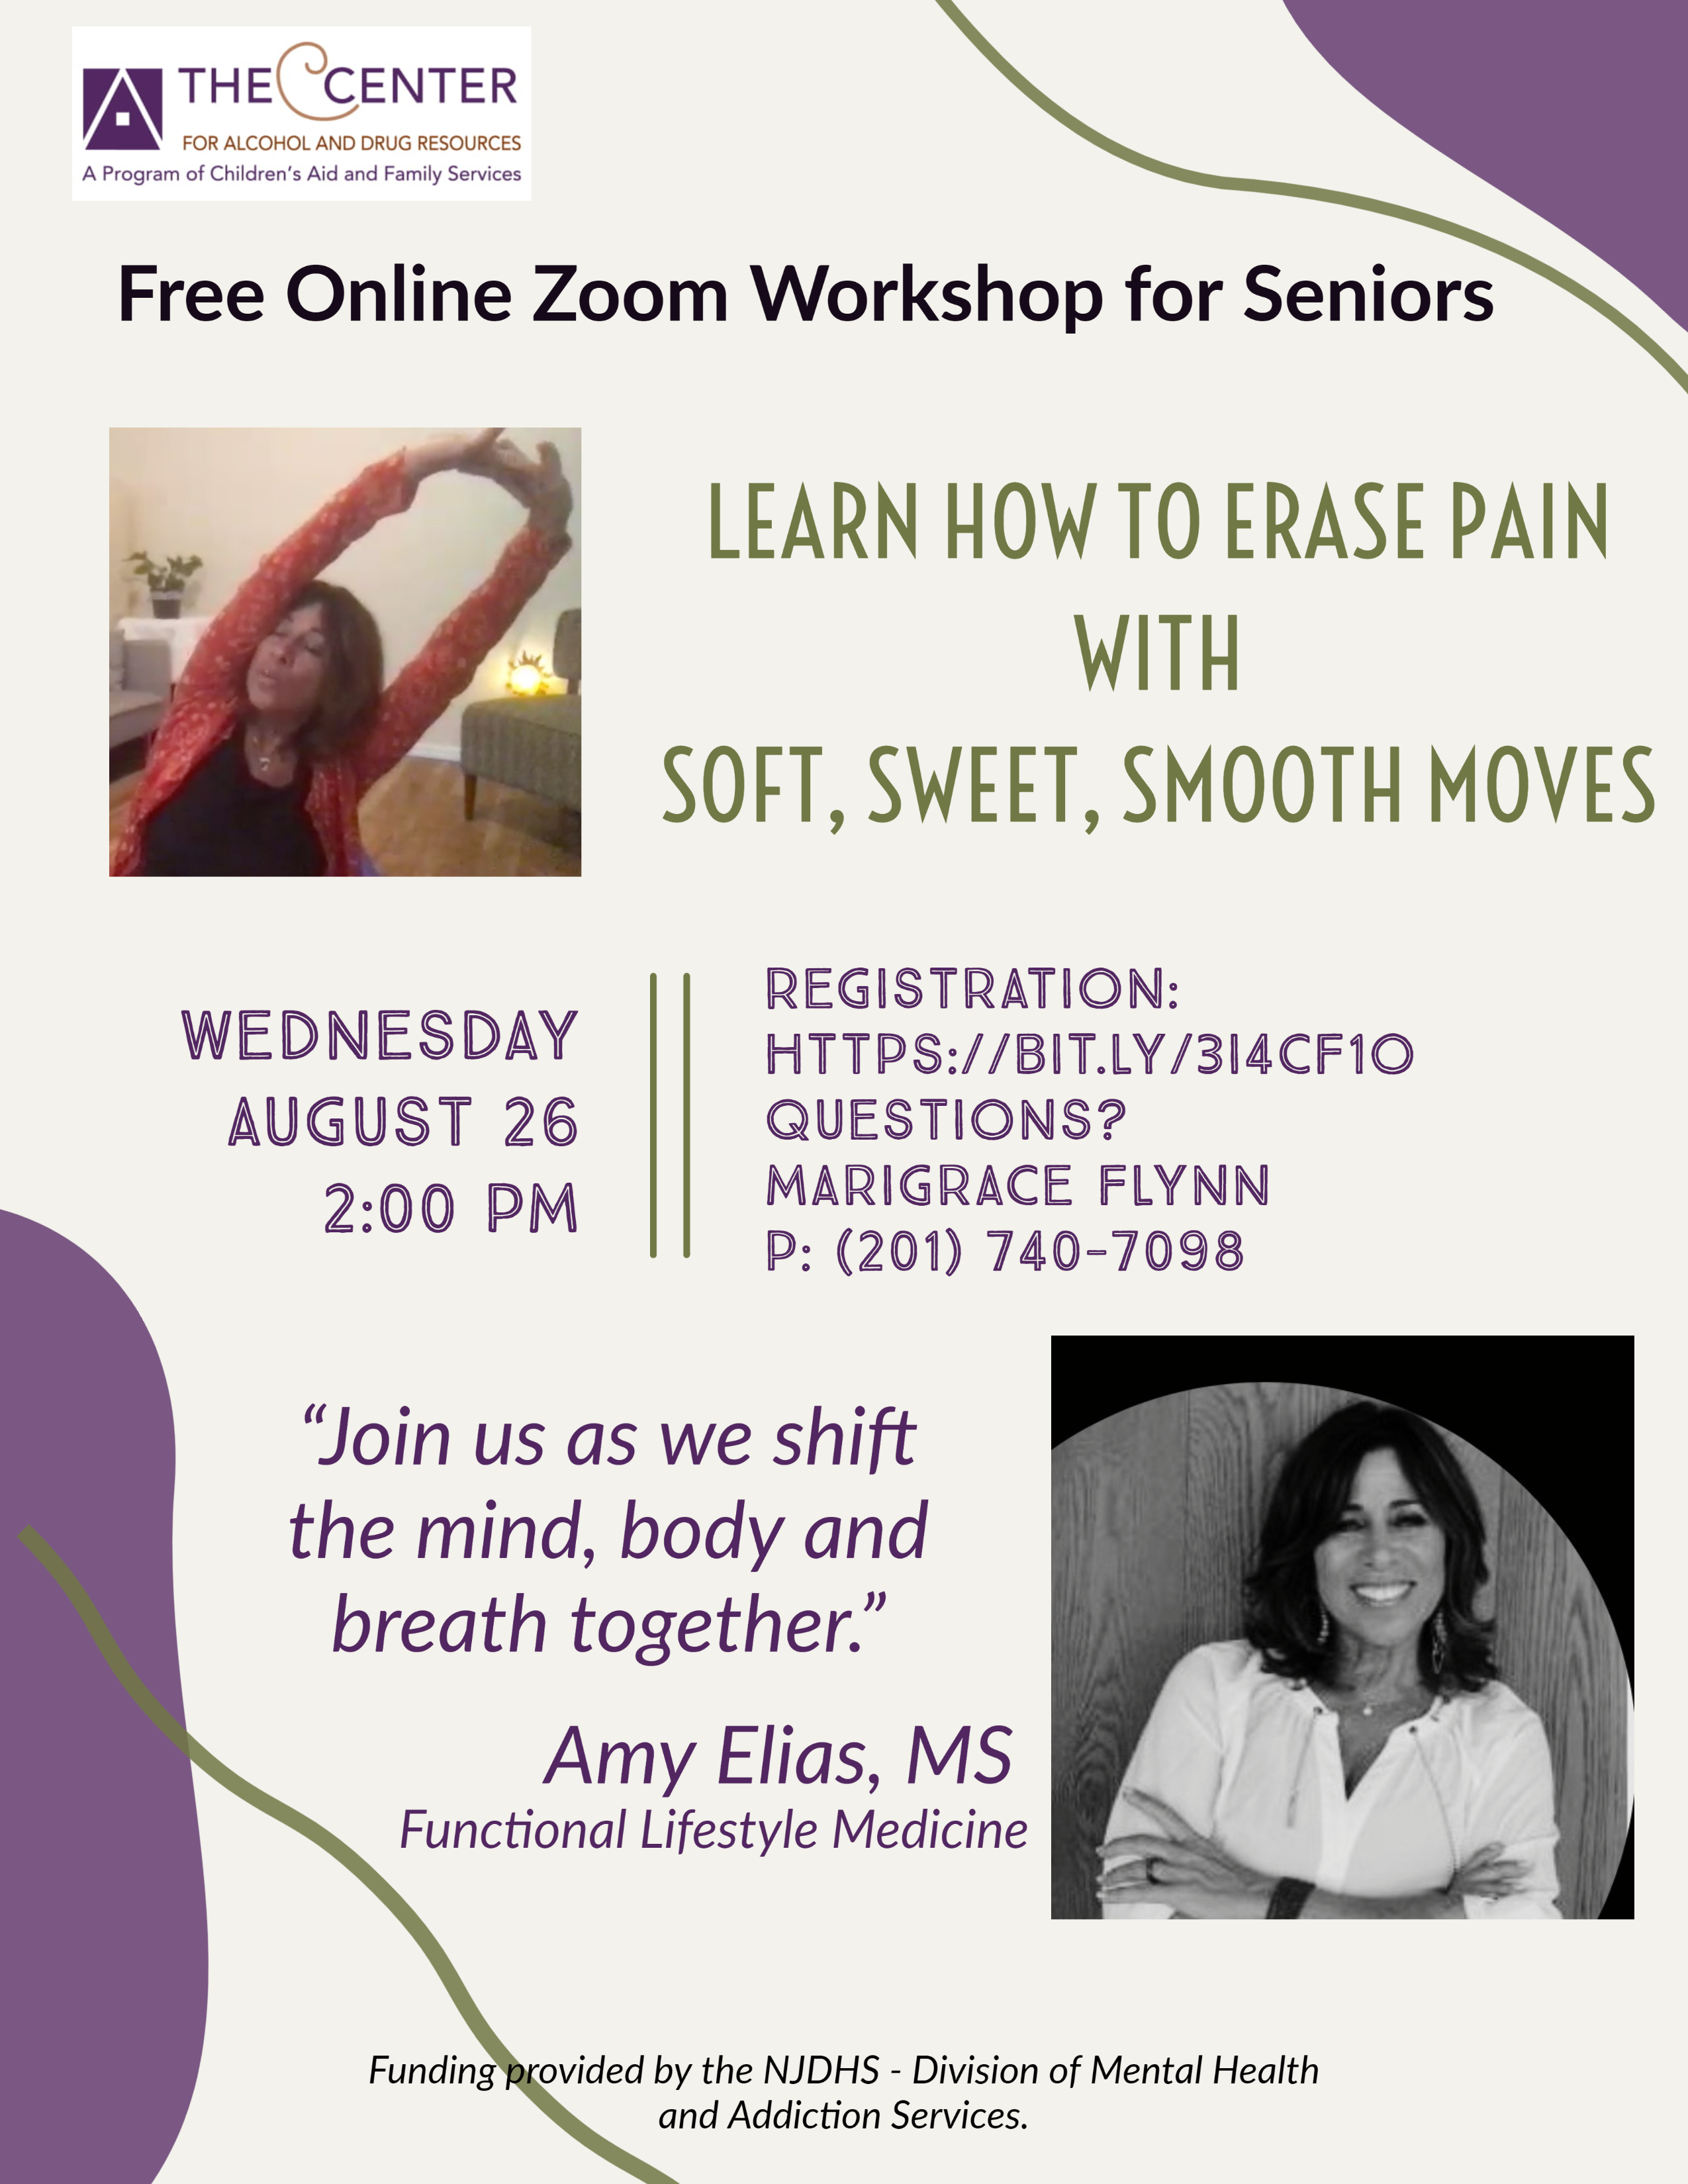 Ease Pain with Soft, Sweet, Smooth Moves